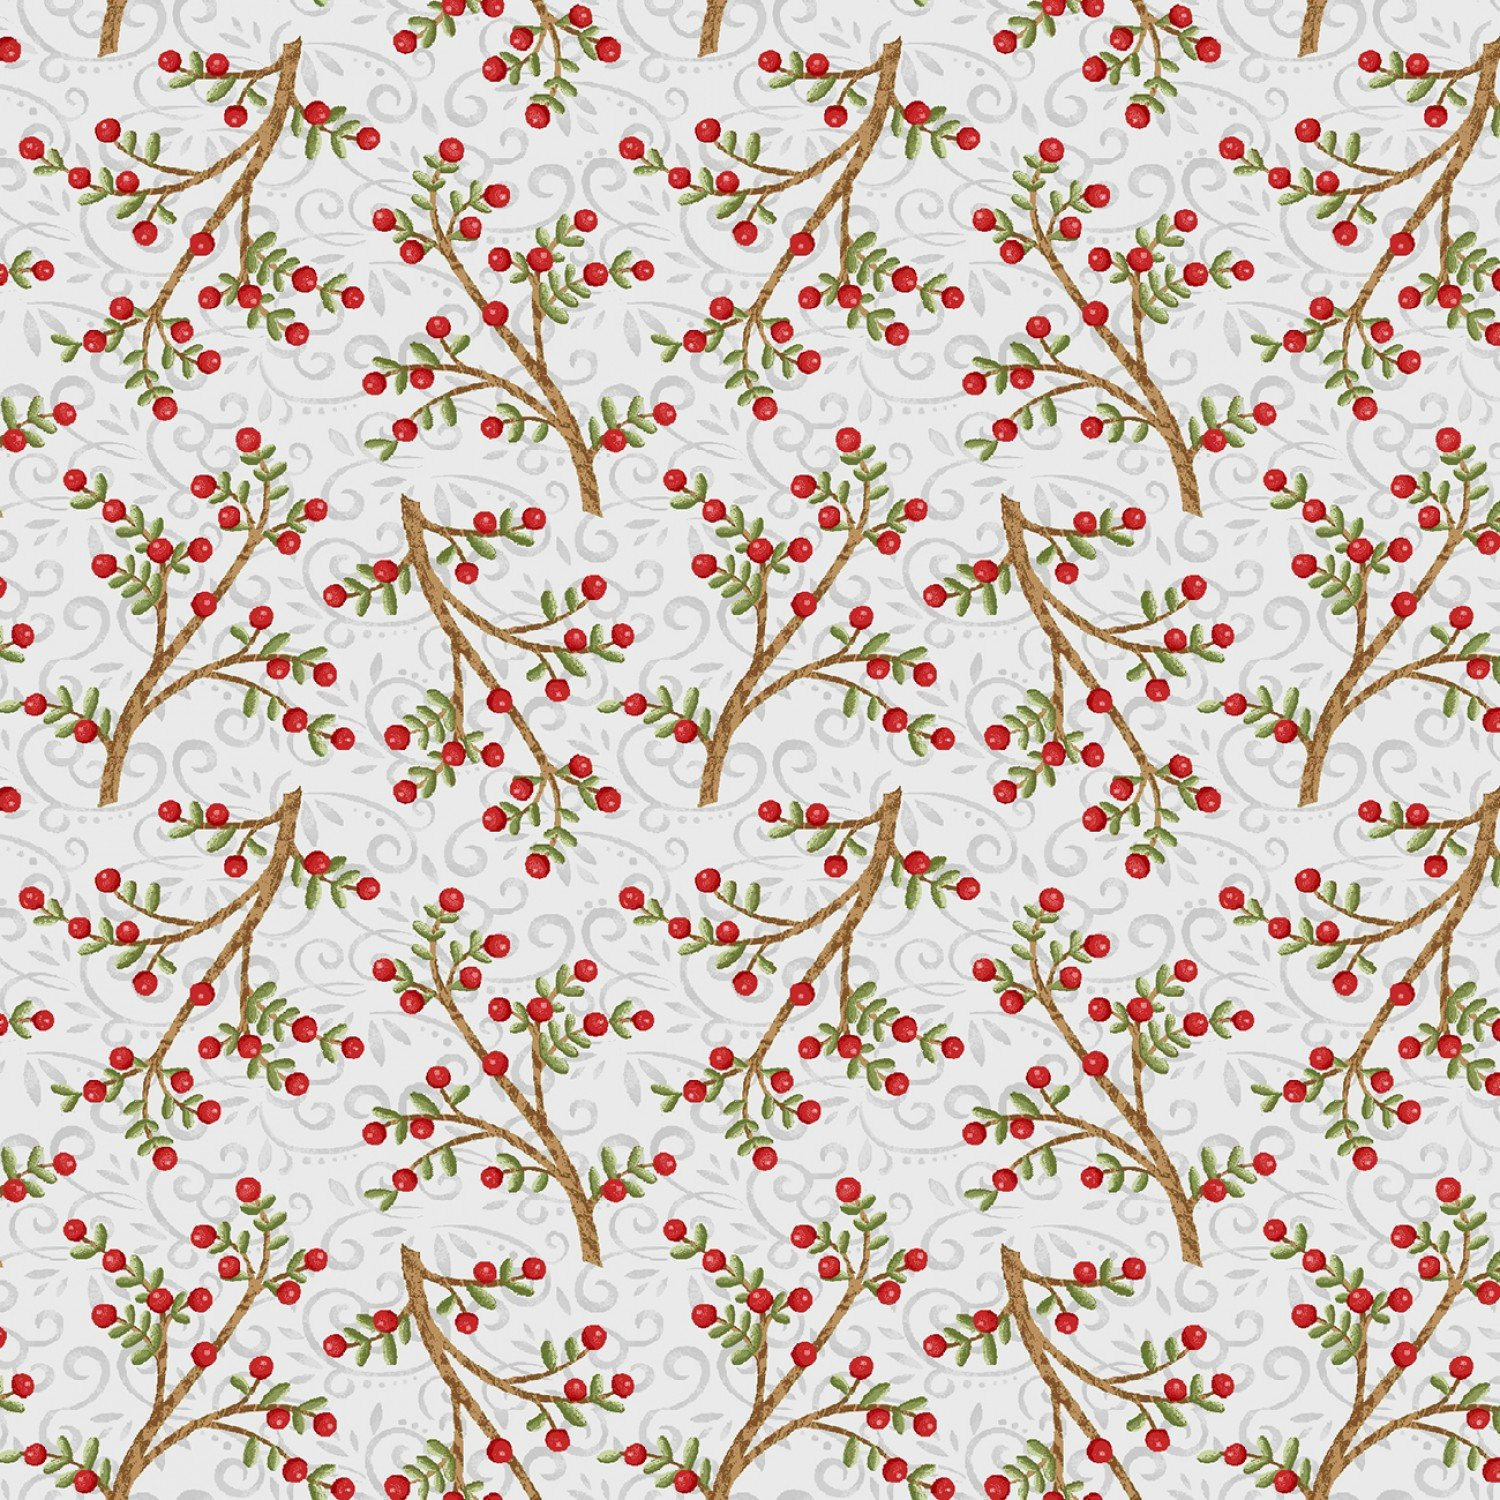 SE-Snow Place Like Home 5170-13 Gray - Tossed Berry Branches